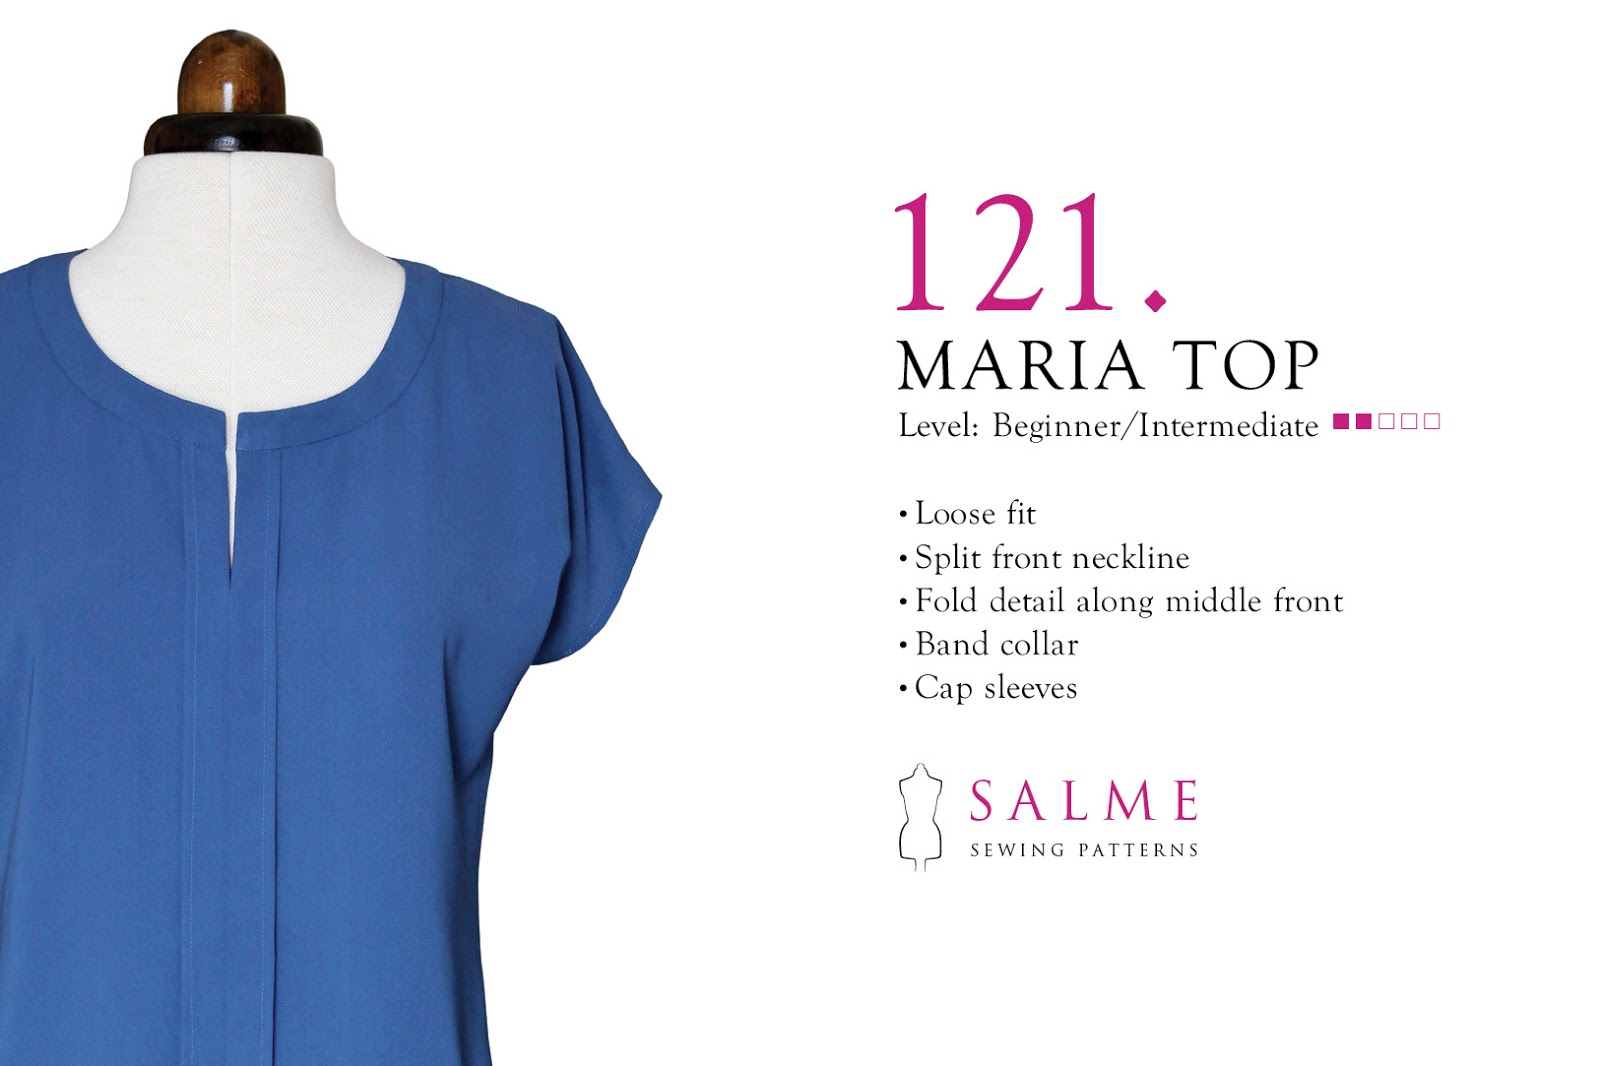 New sewing pattern: Maria top